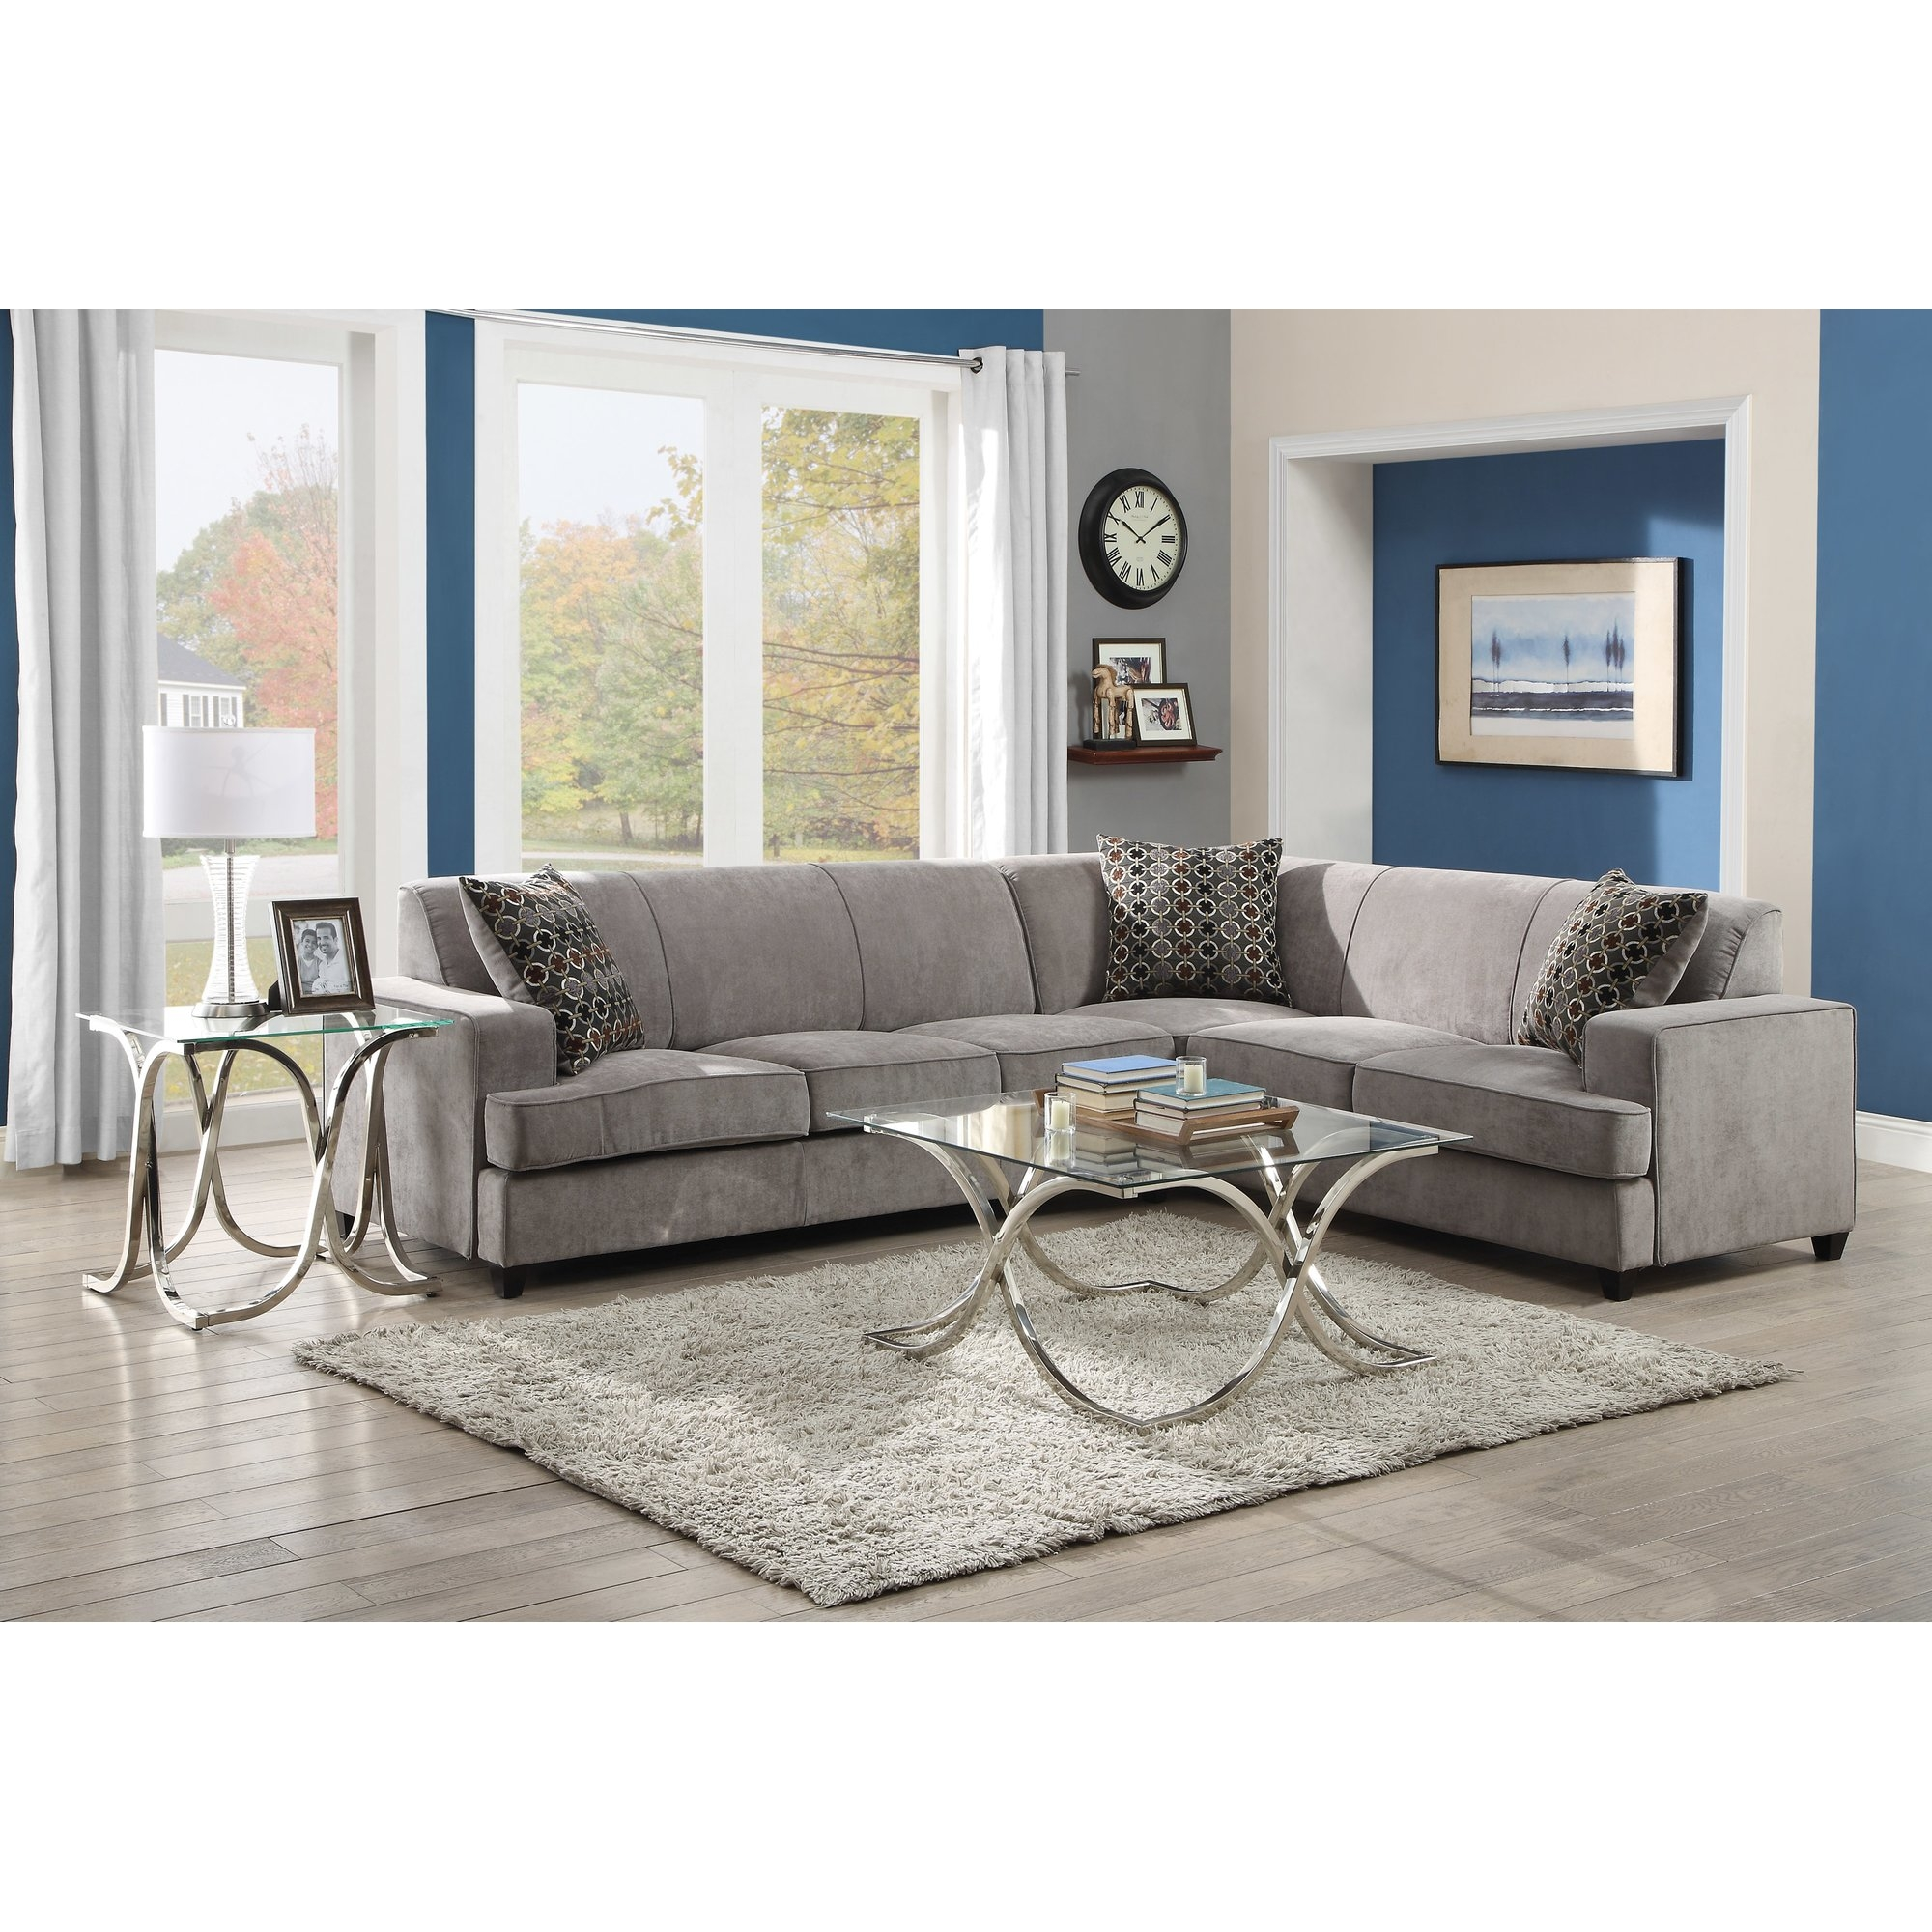 Sectional Sofas Youll Love Wayfair With Compact Sectional Sofas (Image 13 of 15)